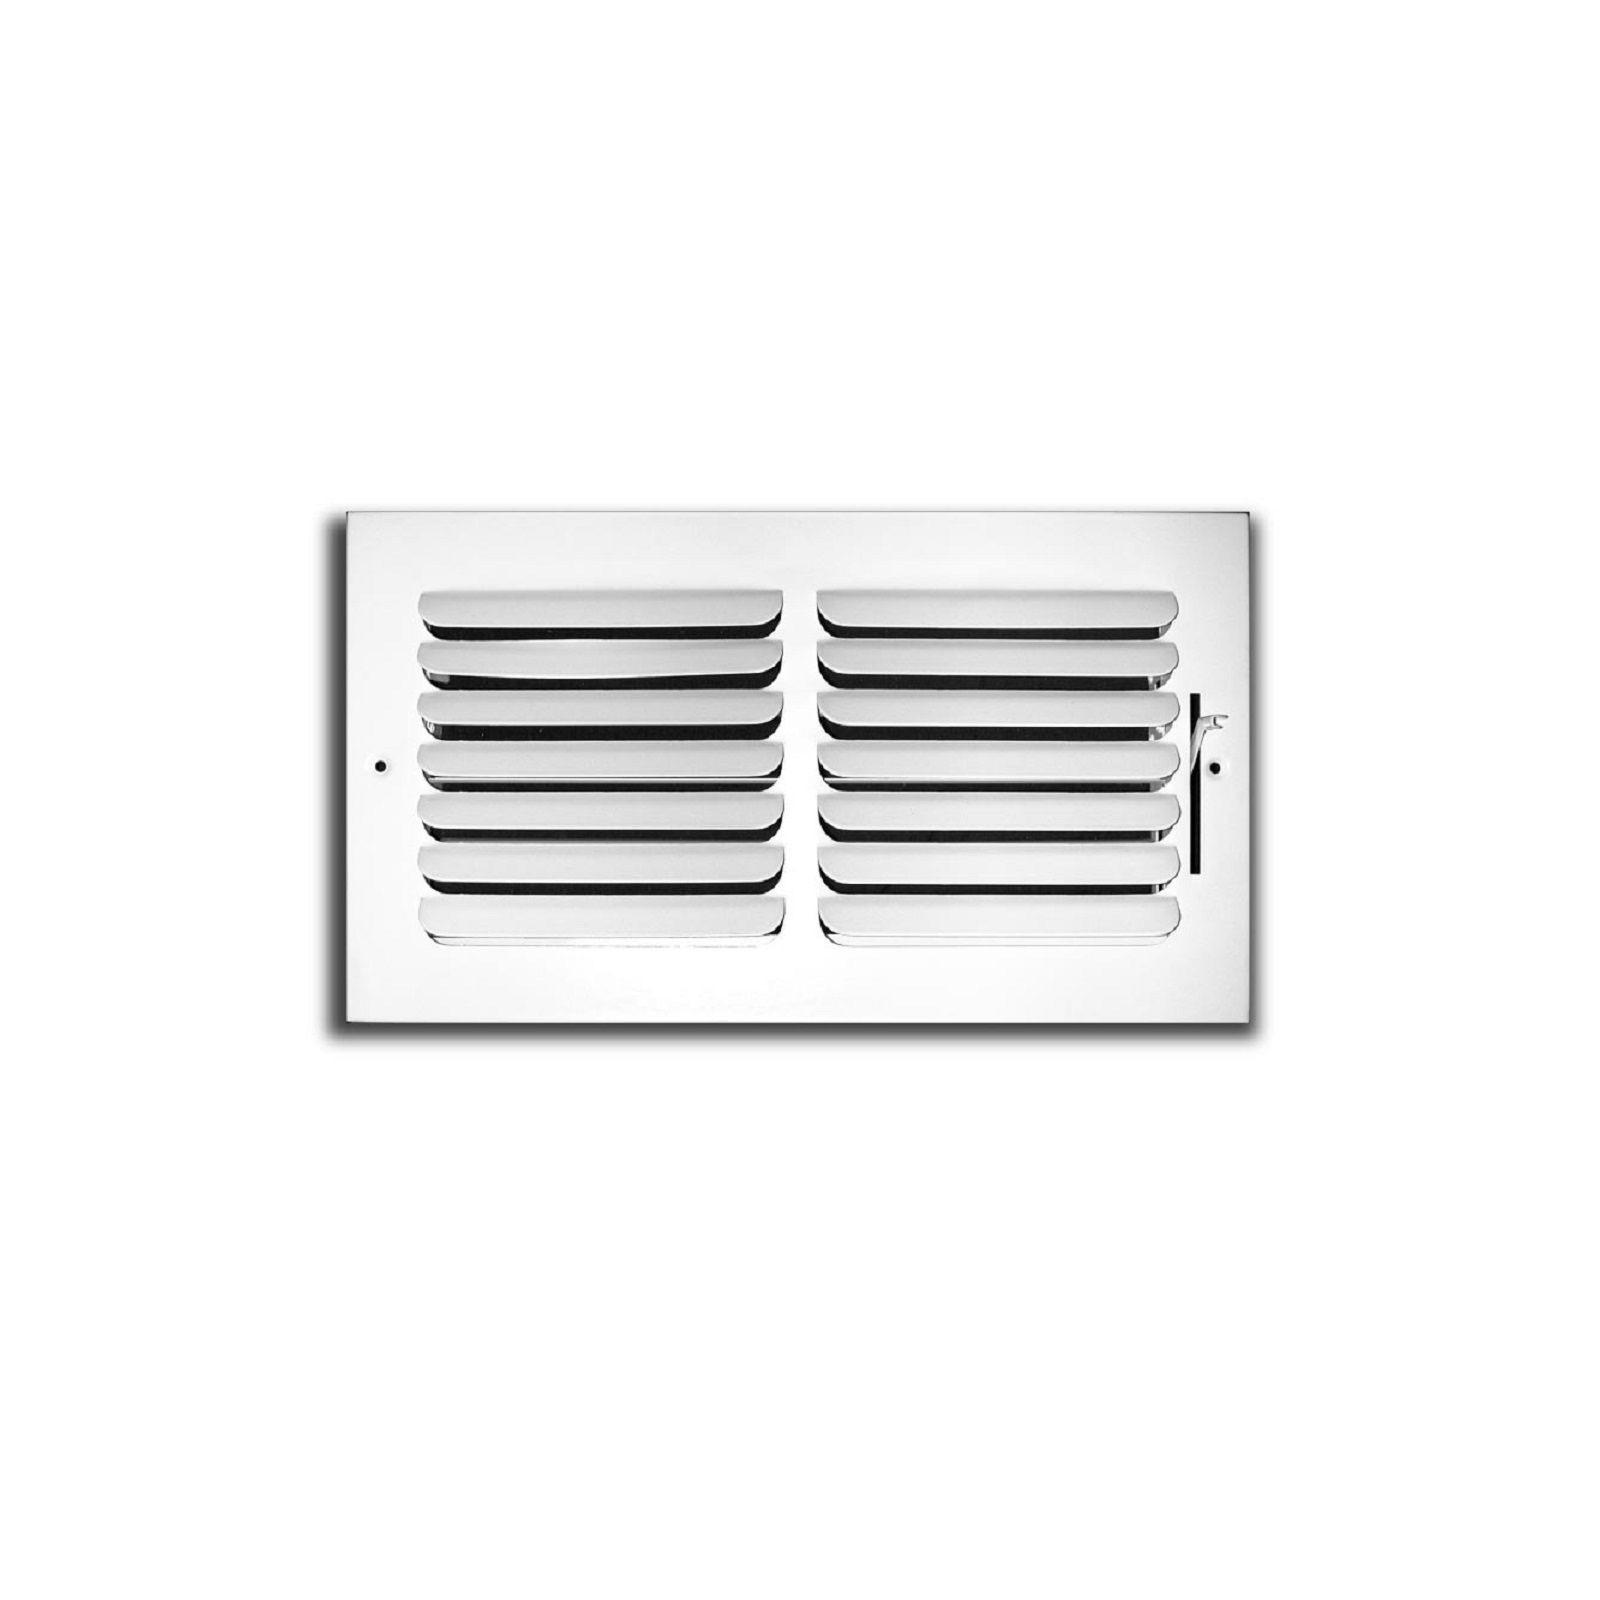 "TRUaire 401M 12X12 - Fixed Curved Blade Wall/Ceiling Register 401M With Multi Shutter Damper, 1-Way, White, 12"" X 12"""